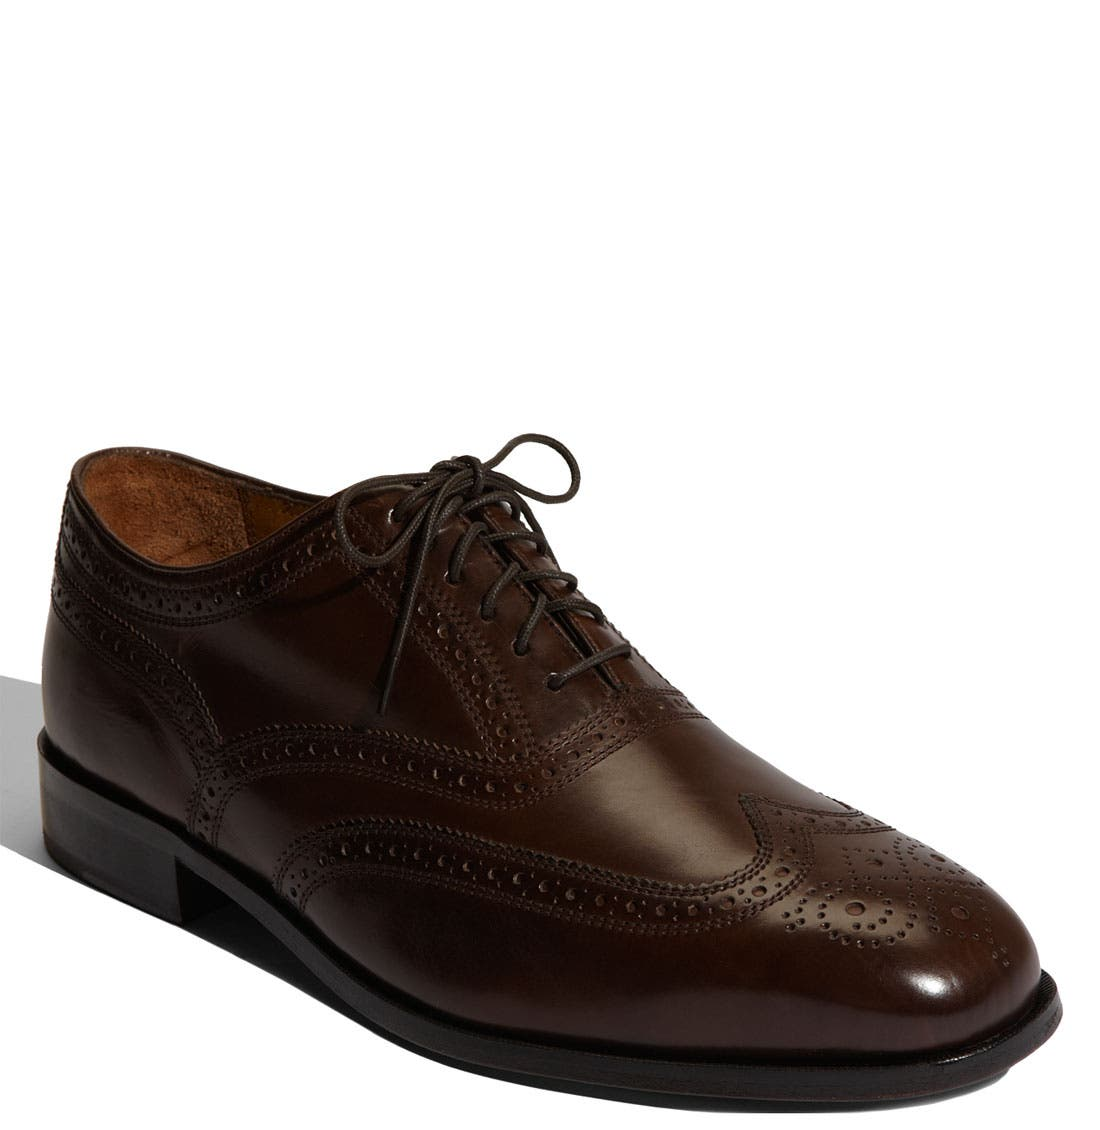 Alternate Image 1 Selected - Florsheim 'Marlton' Wingtip Oxford